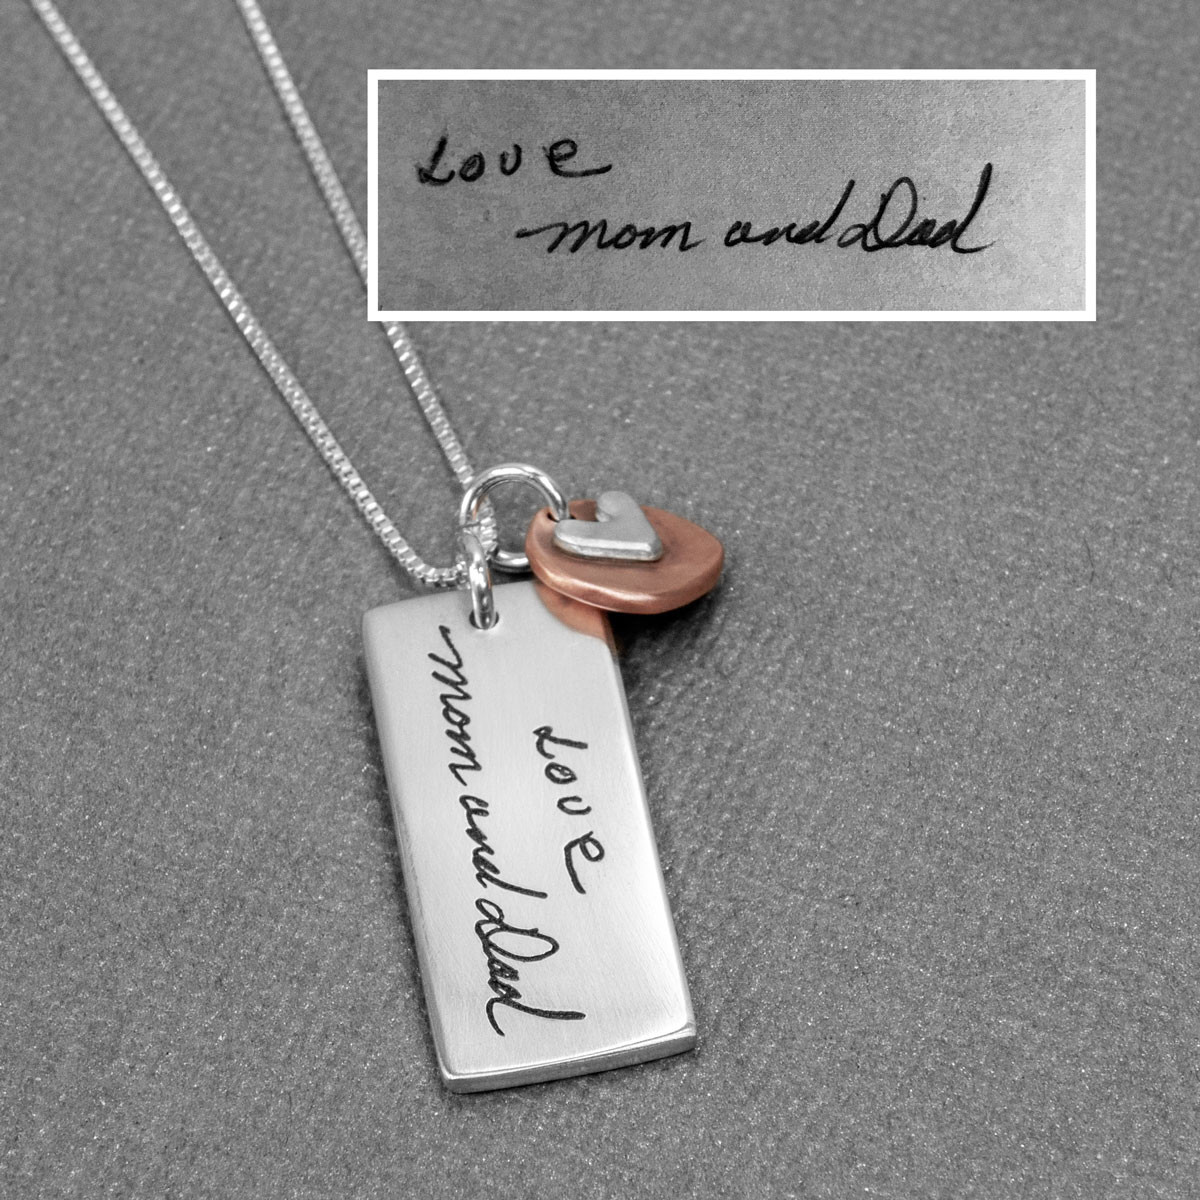 Sculpted Handwriting Silver Necklace with Copper Heart Charm, shown with original handwritten note used to create it